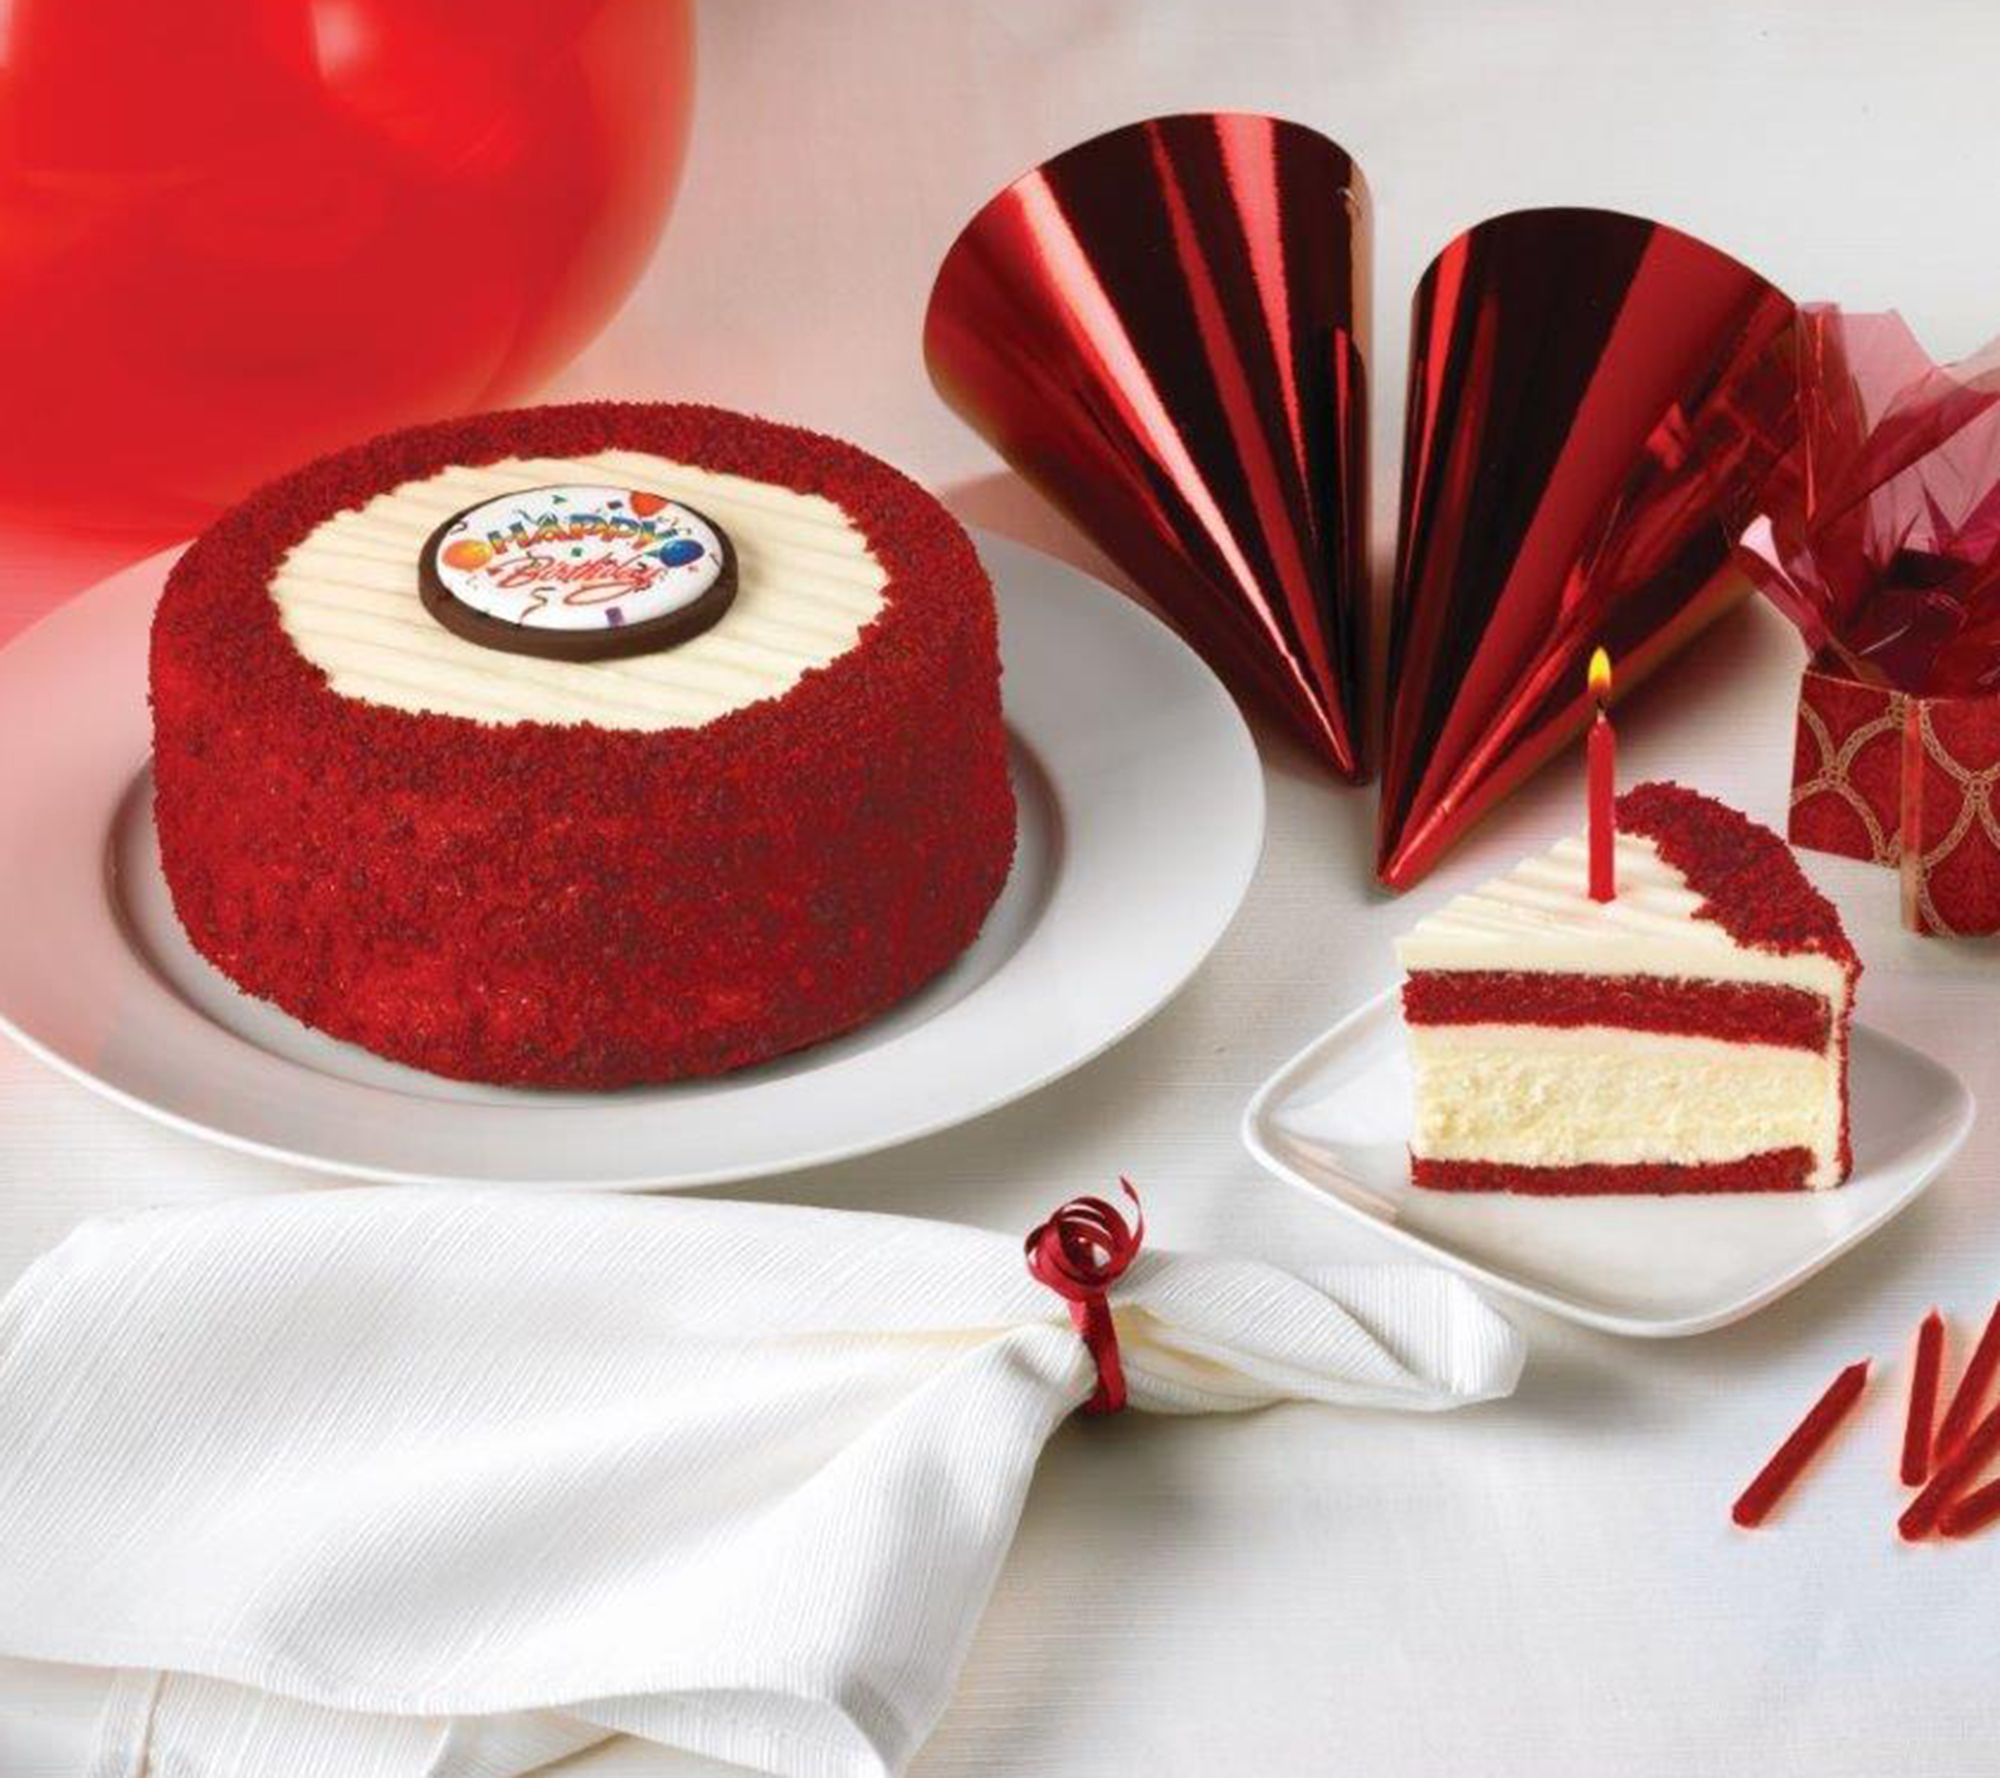 Juniors 7 Happy Birthday Red Velvet Cheesecake QVCcom